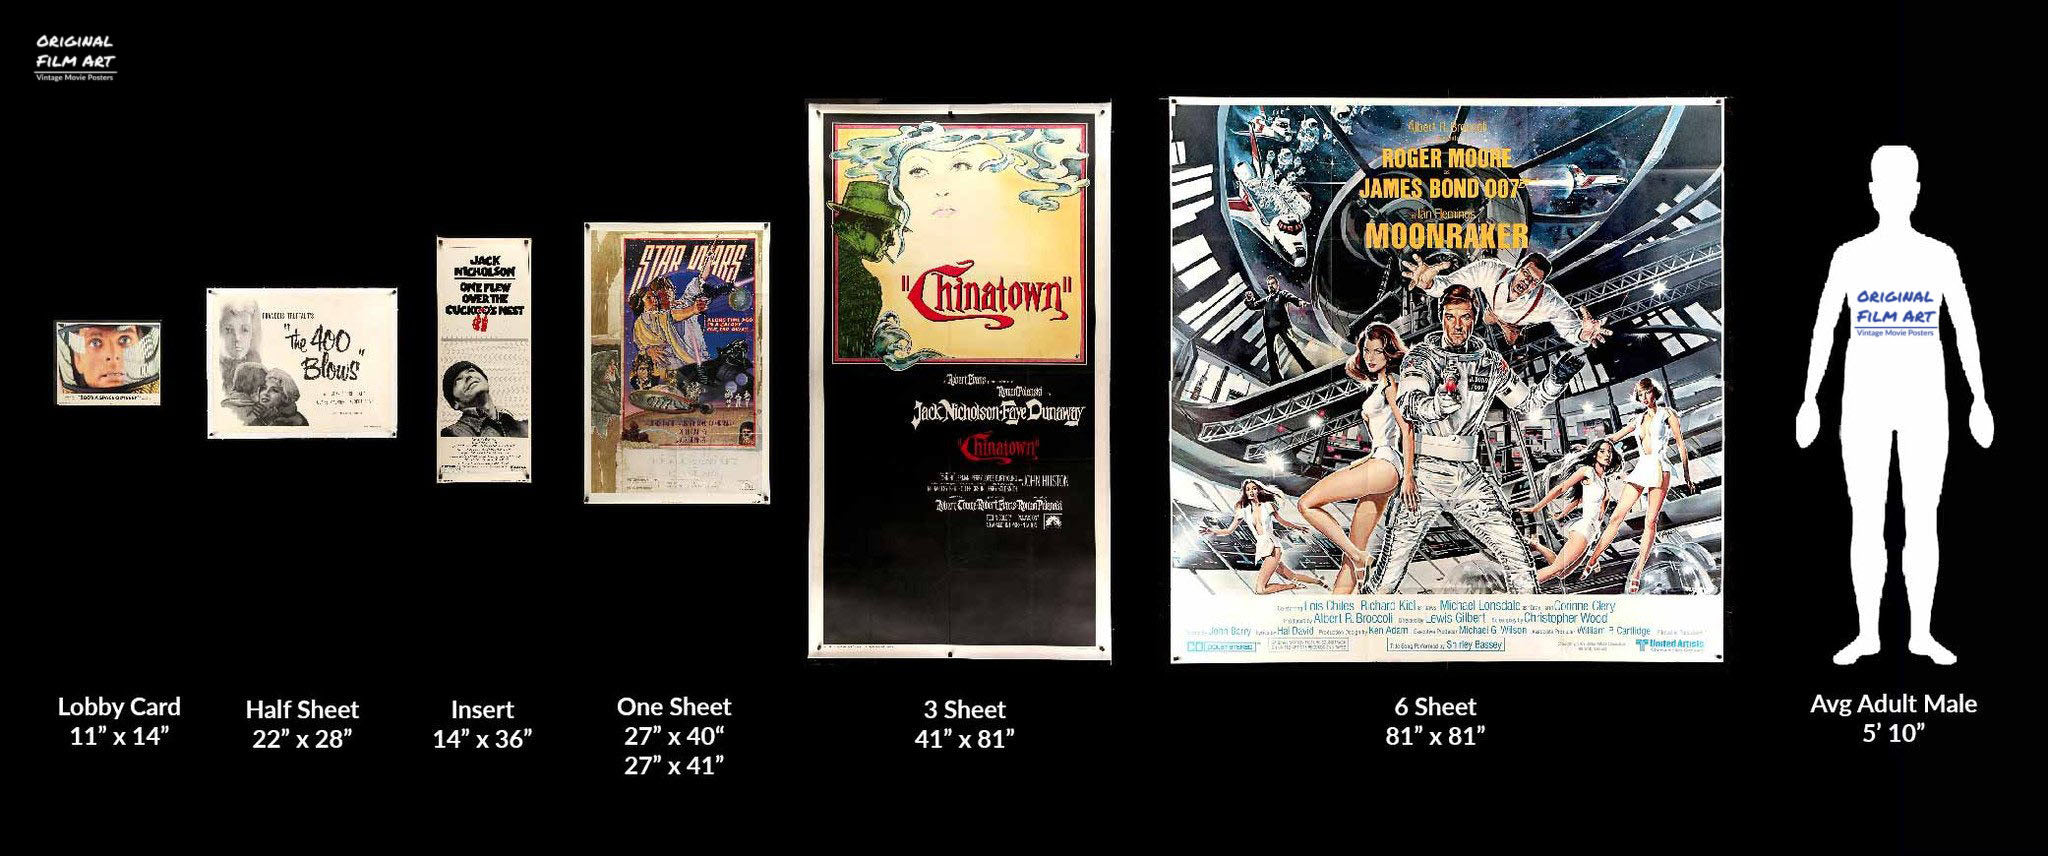 United States Vintage Movie Poster Sizes at Original Film Art